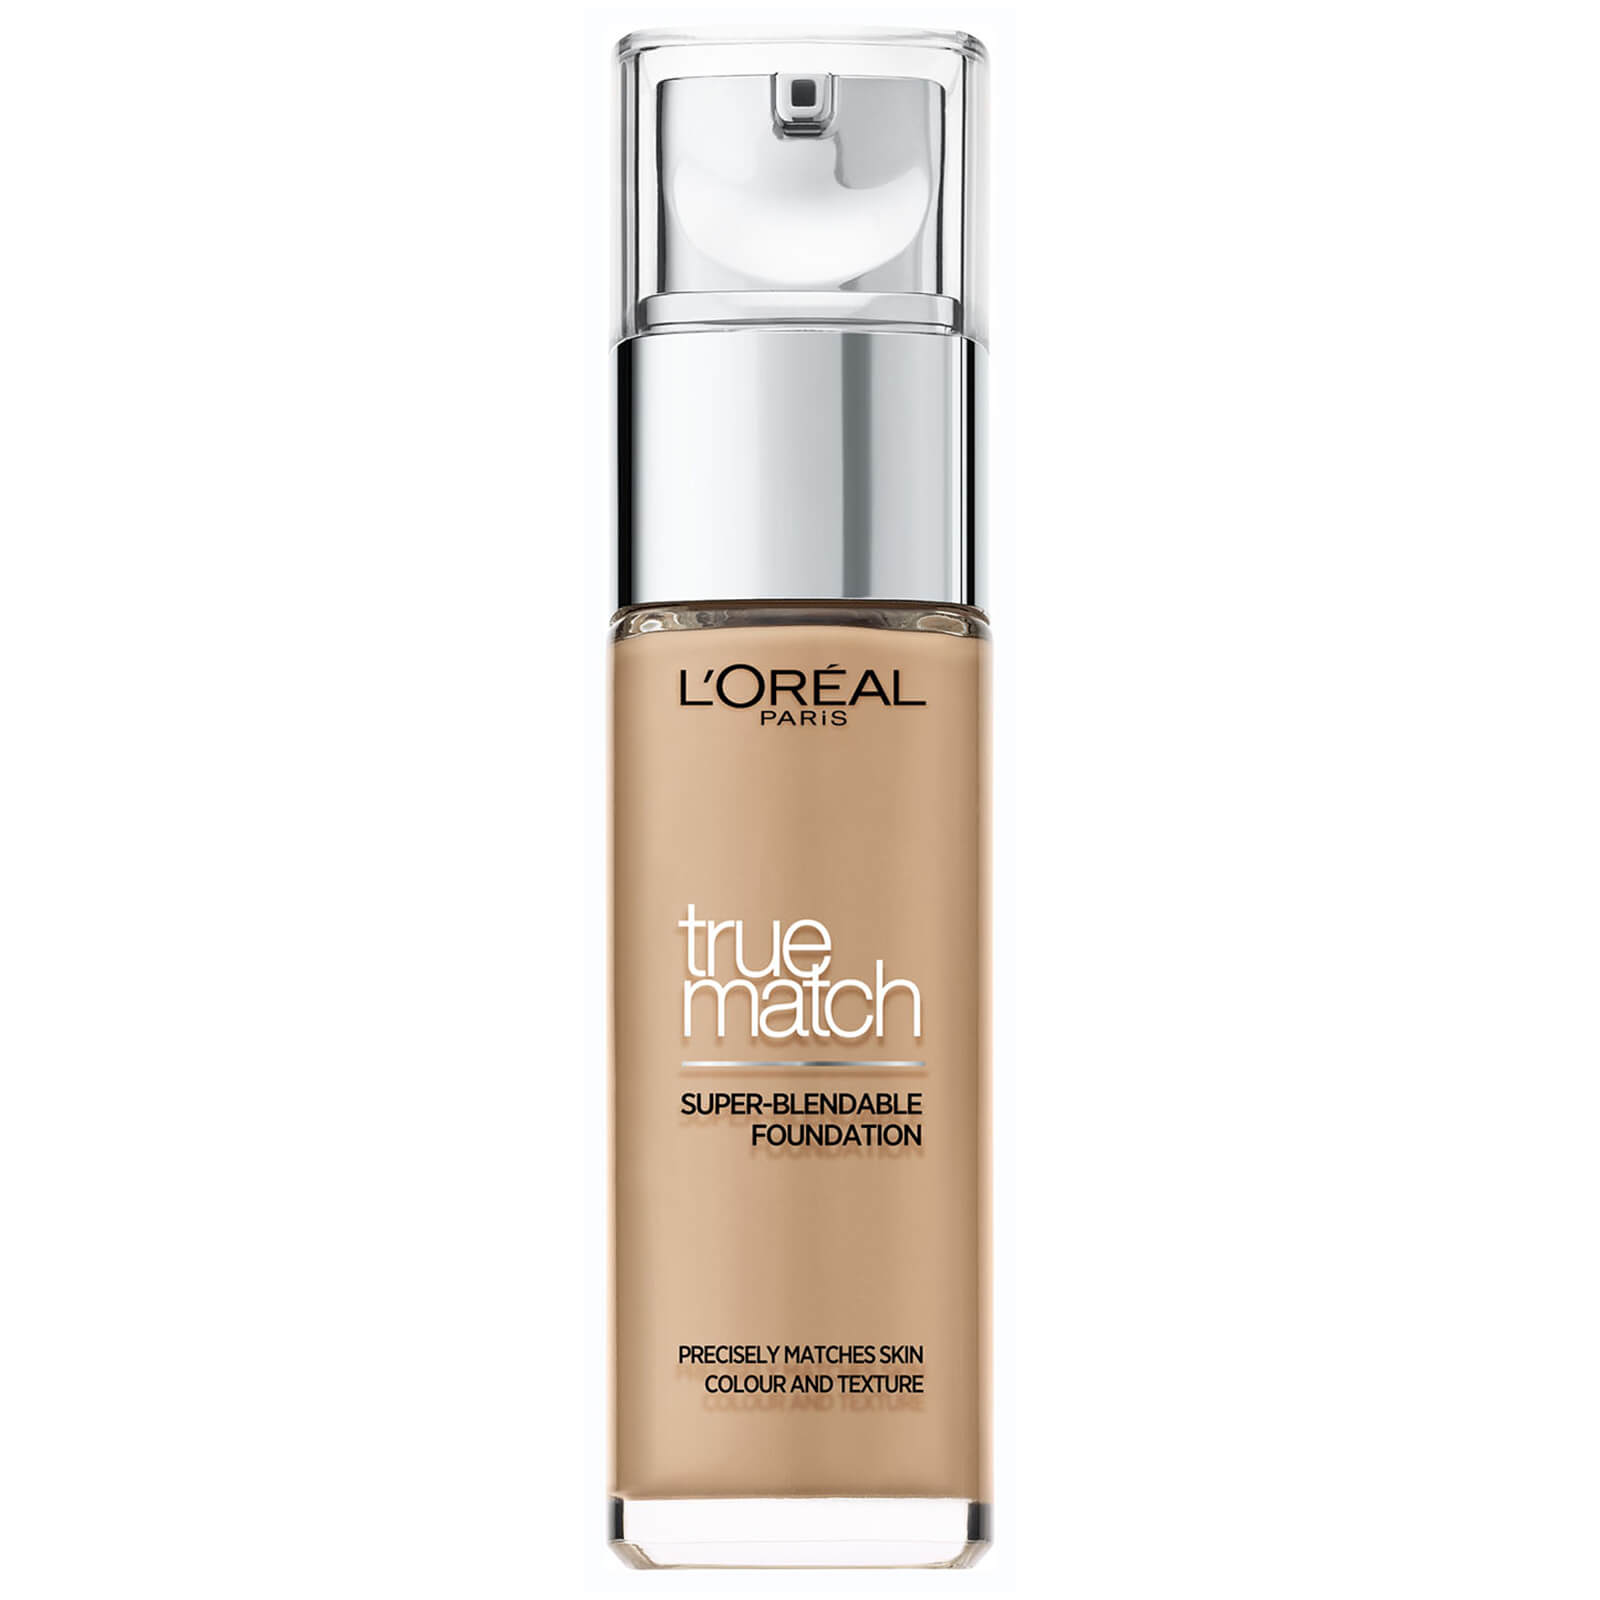 L Oreal Paris True Match Liquid Foundation With Spf And Hyaluronic Acid 30ml Various Shades Lookfantastic